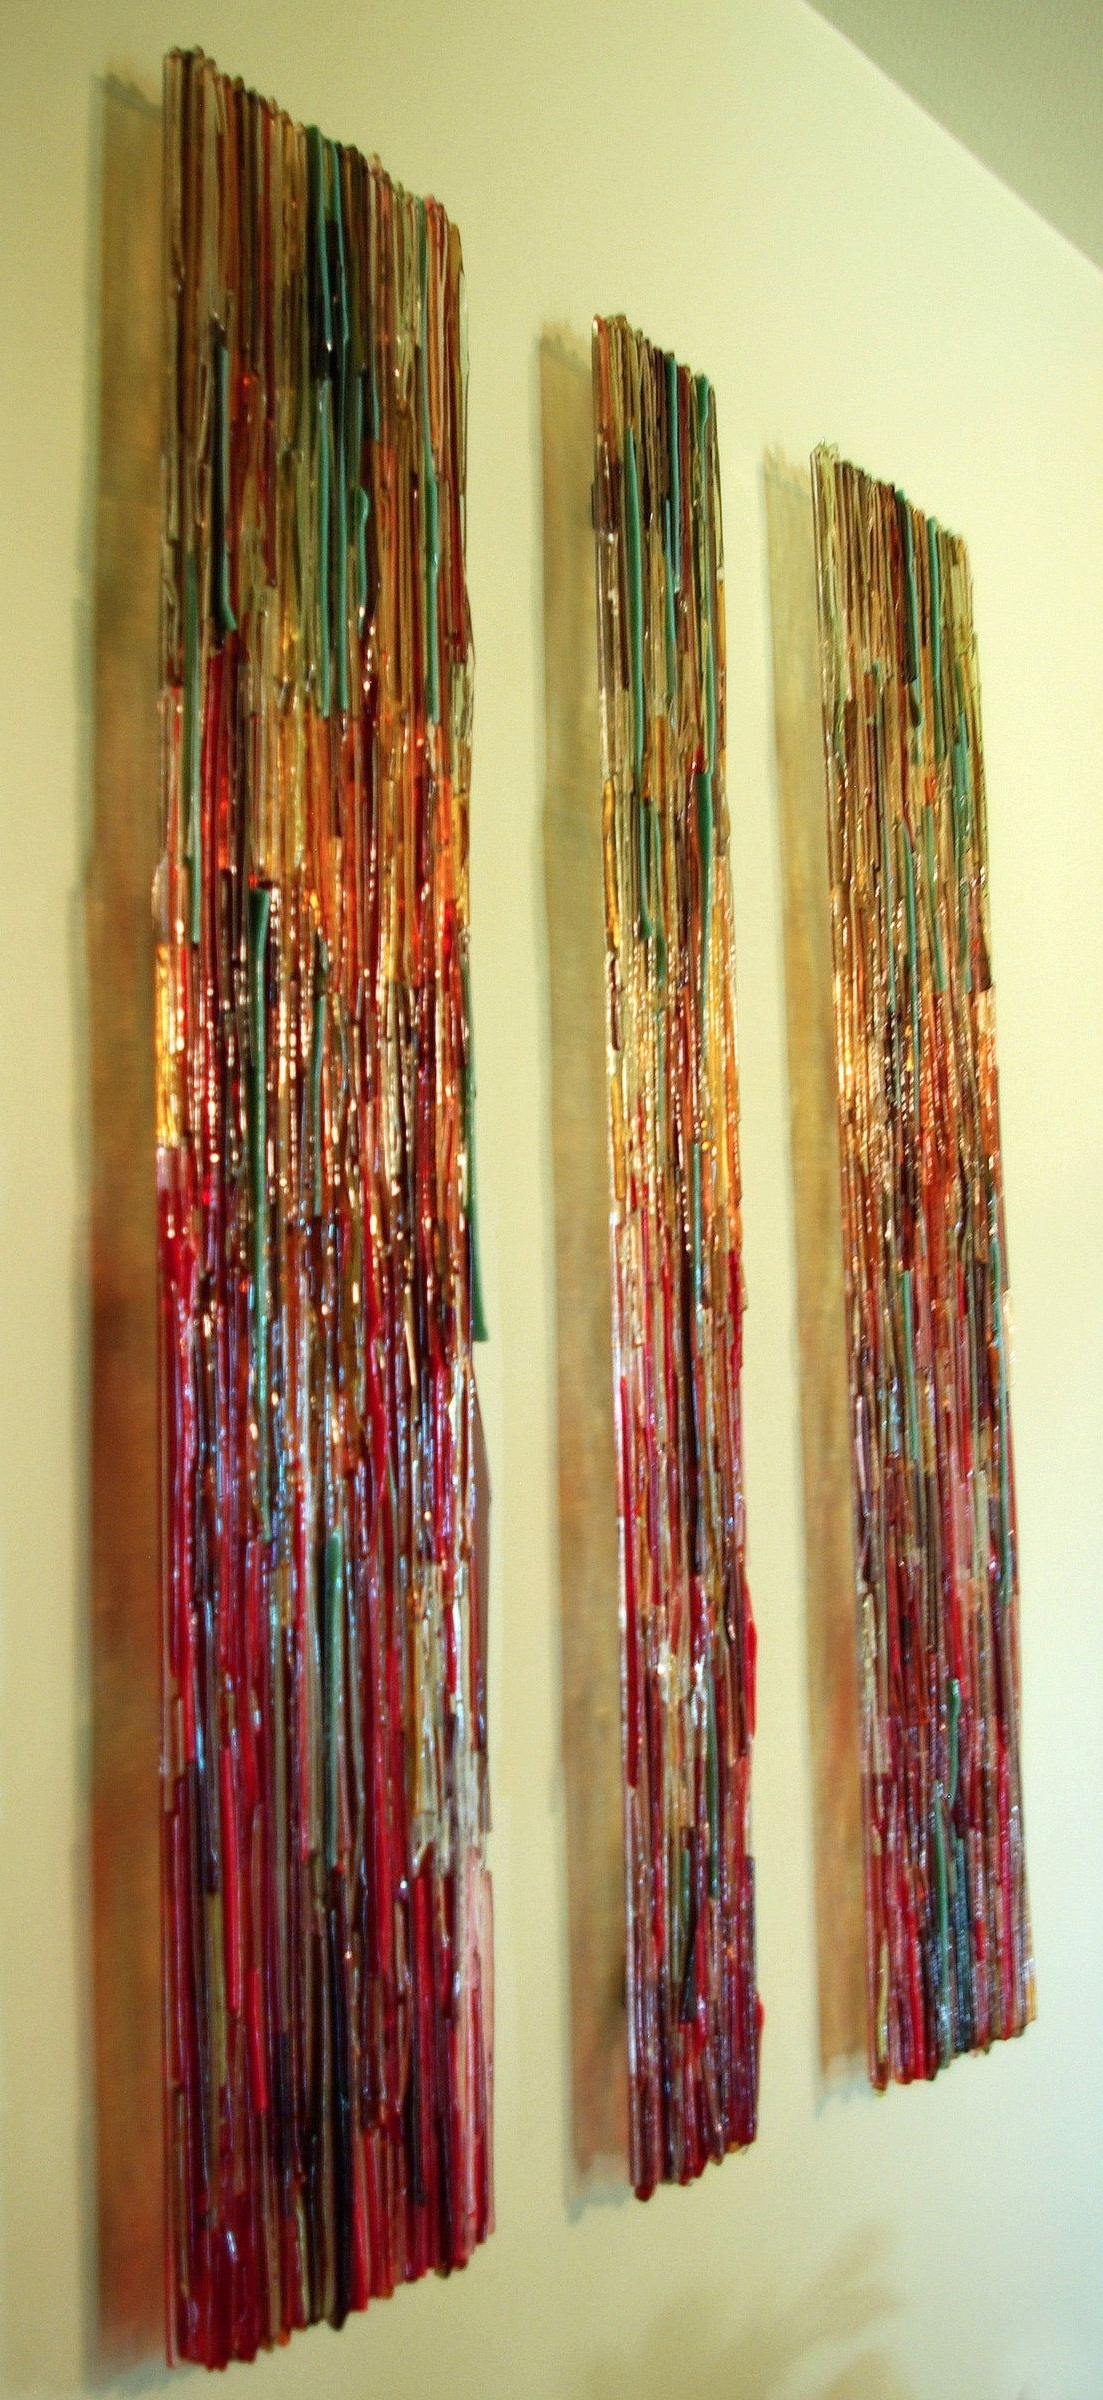 Fashionable Glass Wall Art Panels Intended For Transpire Wall Panels: Sarinda Jones: Art Glass Wall Art – Artful (View 5 of 15)